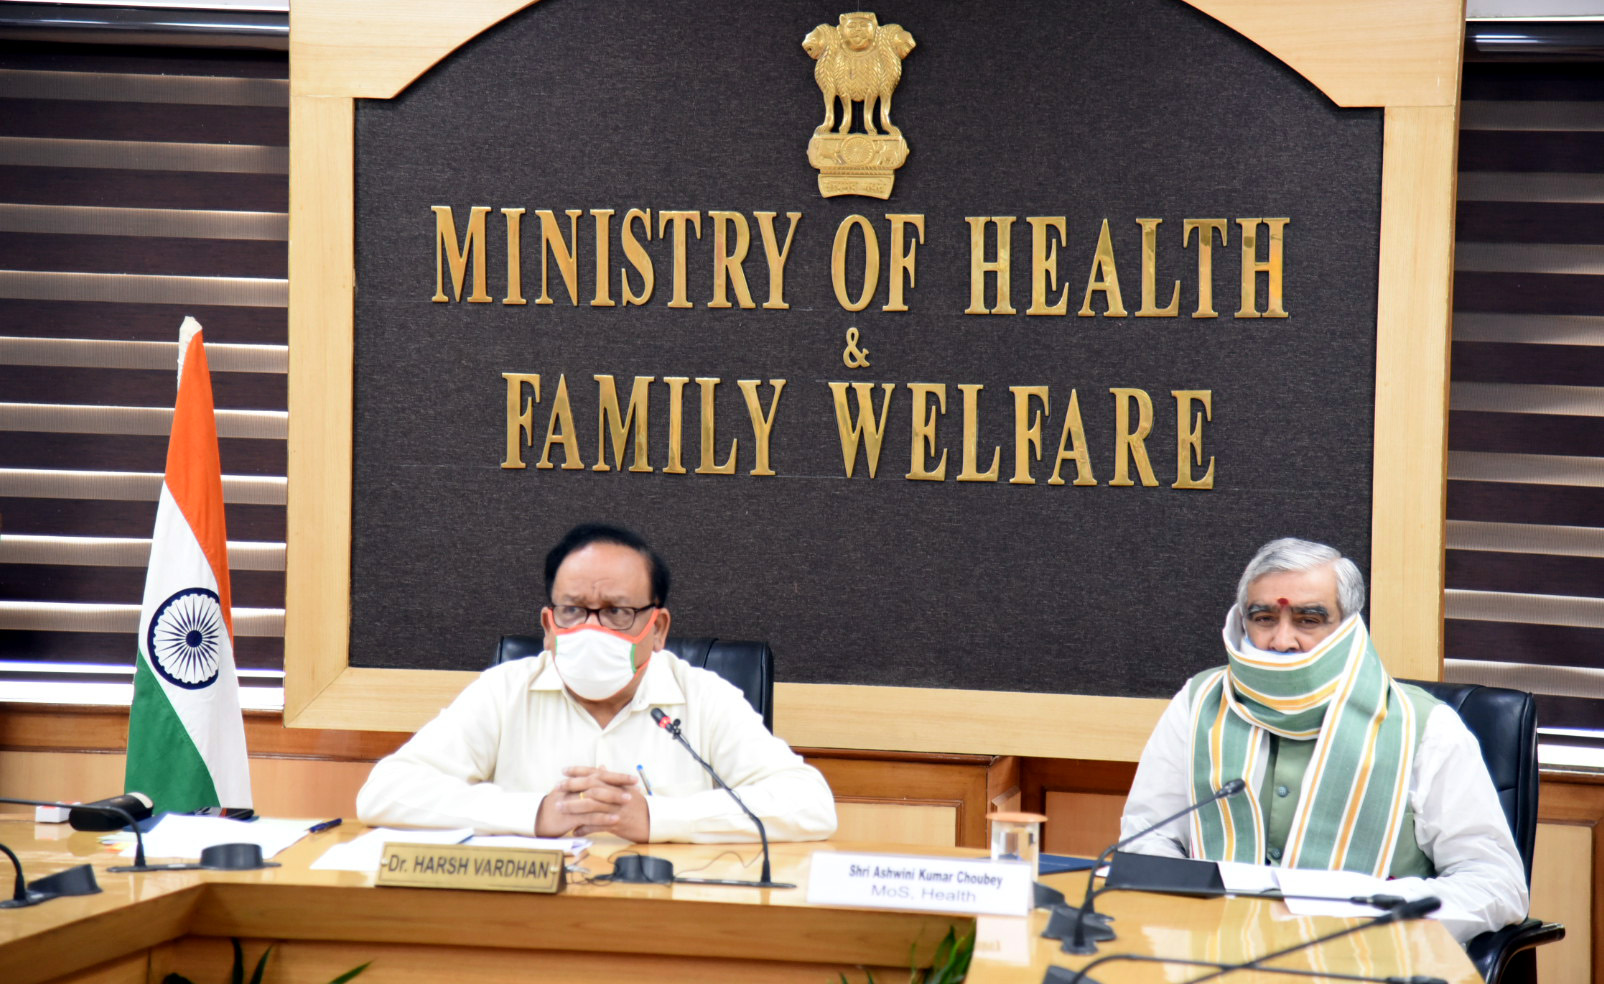 The Union Minister for Health & Family Welfare, Science & Technology and Earth Sciences, Dr. Harsh Vardhan chairing a high-level review meeting with the Lt. Governor of Delhi, Shri Anil Baijal, the Health Minister of Delhi, Shri Satyendra Jain, various District Magistrates, Commissioners & Mayors of Delhi on status, preparations & management of COVID-19 in various districts of NCT of Delhi, via video conferencing, in New Delhi on June 04, 2020. The Minister of State for Health and Family Welfare, Shri Ashwini Kumar Choubey is also seen.